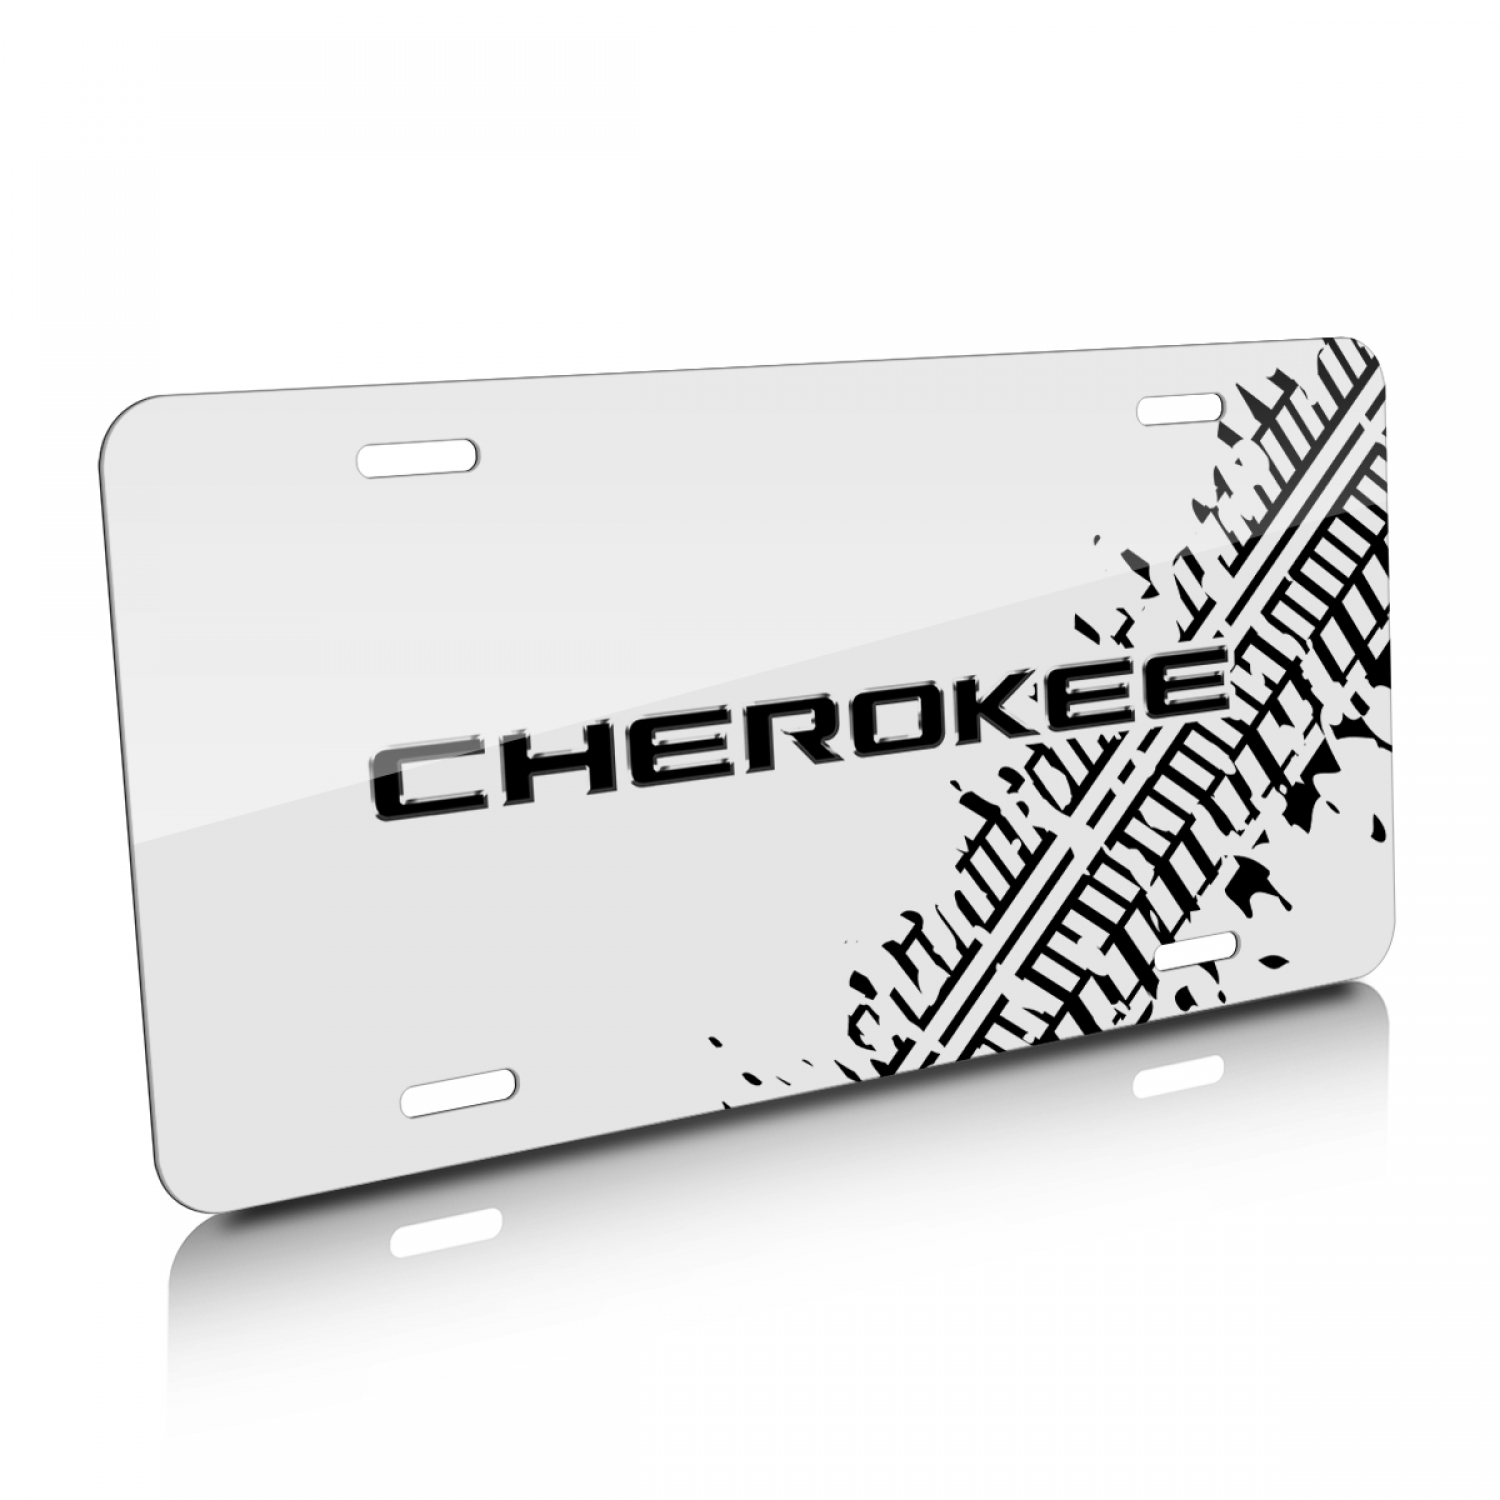 Jeep Cherokee Tire Mark Graphic White Aluminum License Plate